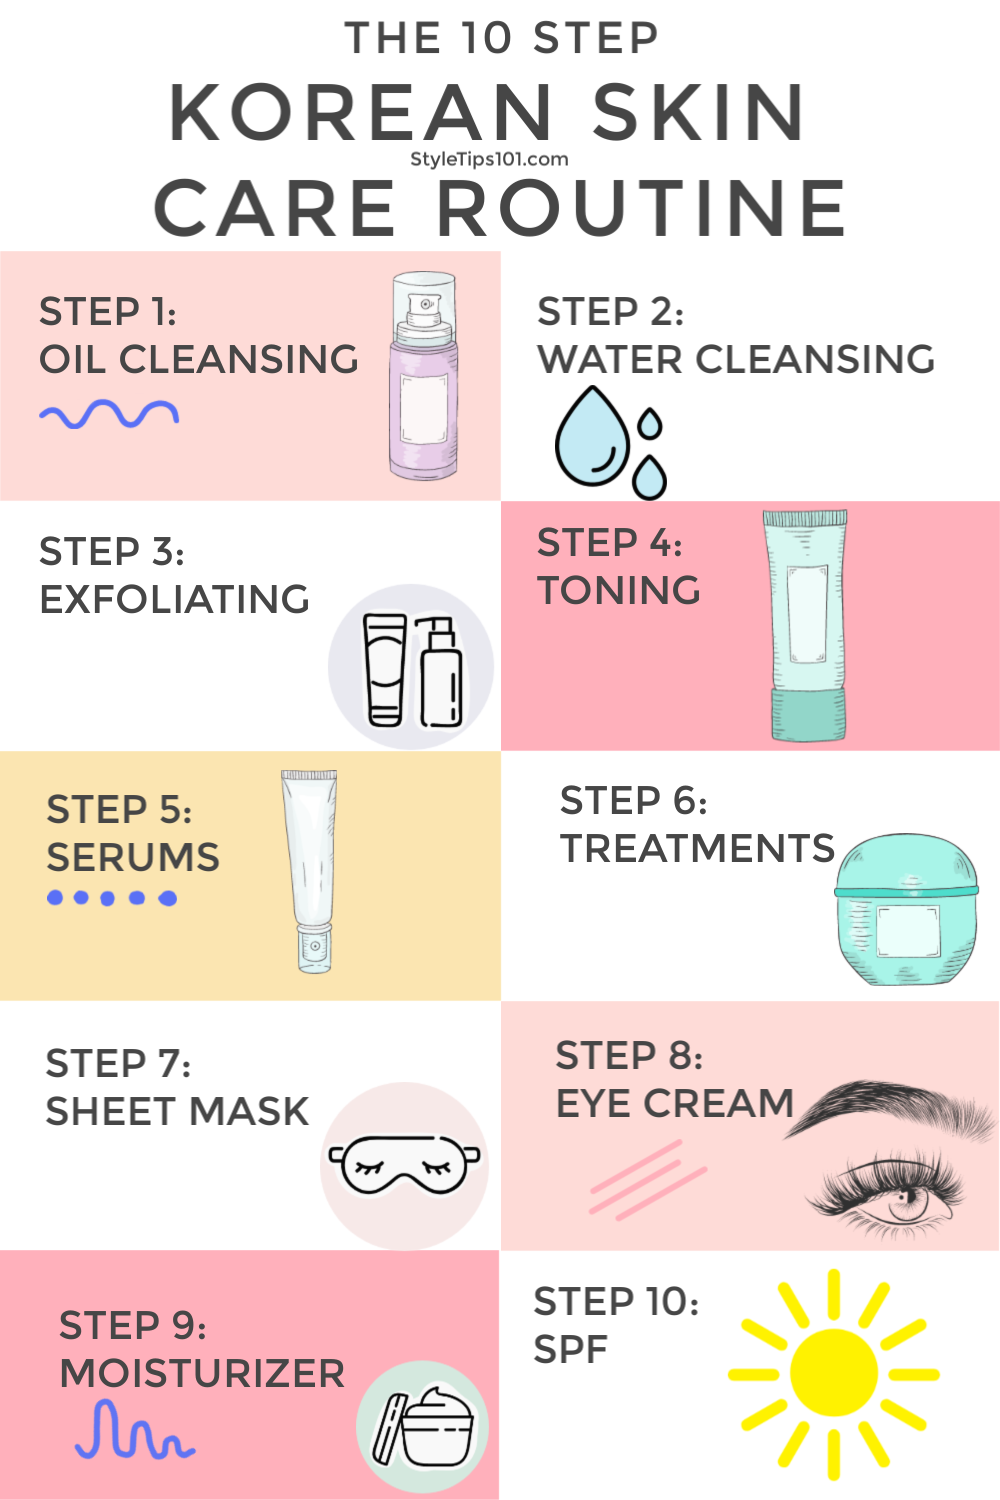 10 Step Korean Skin Care Routine Care Korean Routine Skin Step Skin Care Routine Steps Skin Care Korean Skincare Routine